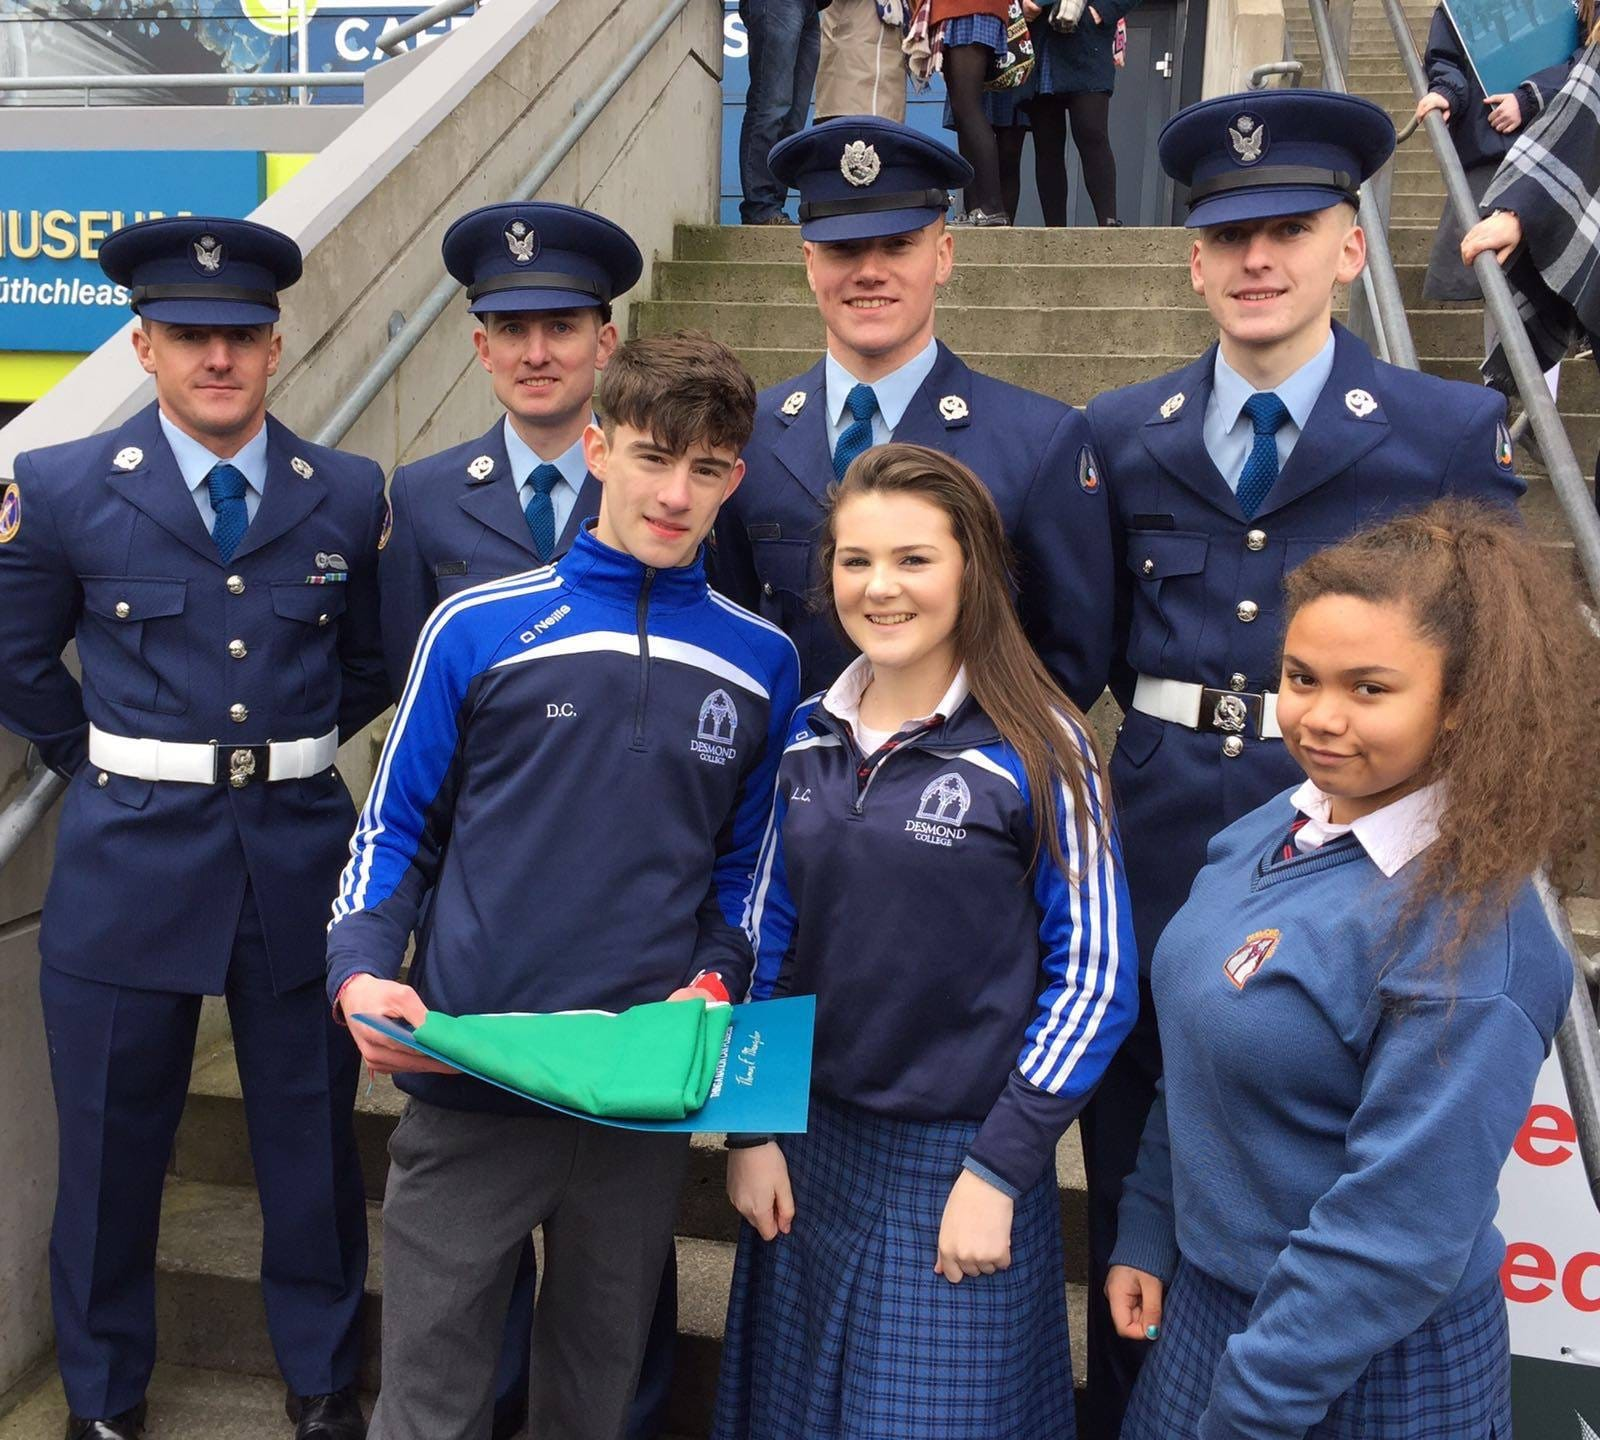 March 2016: Desmond College Students Collecting the Flag at the 1916 Commemoration Service in Croke Park